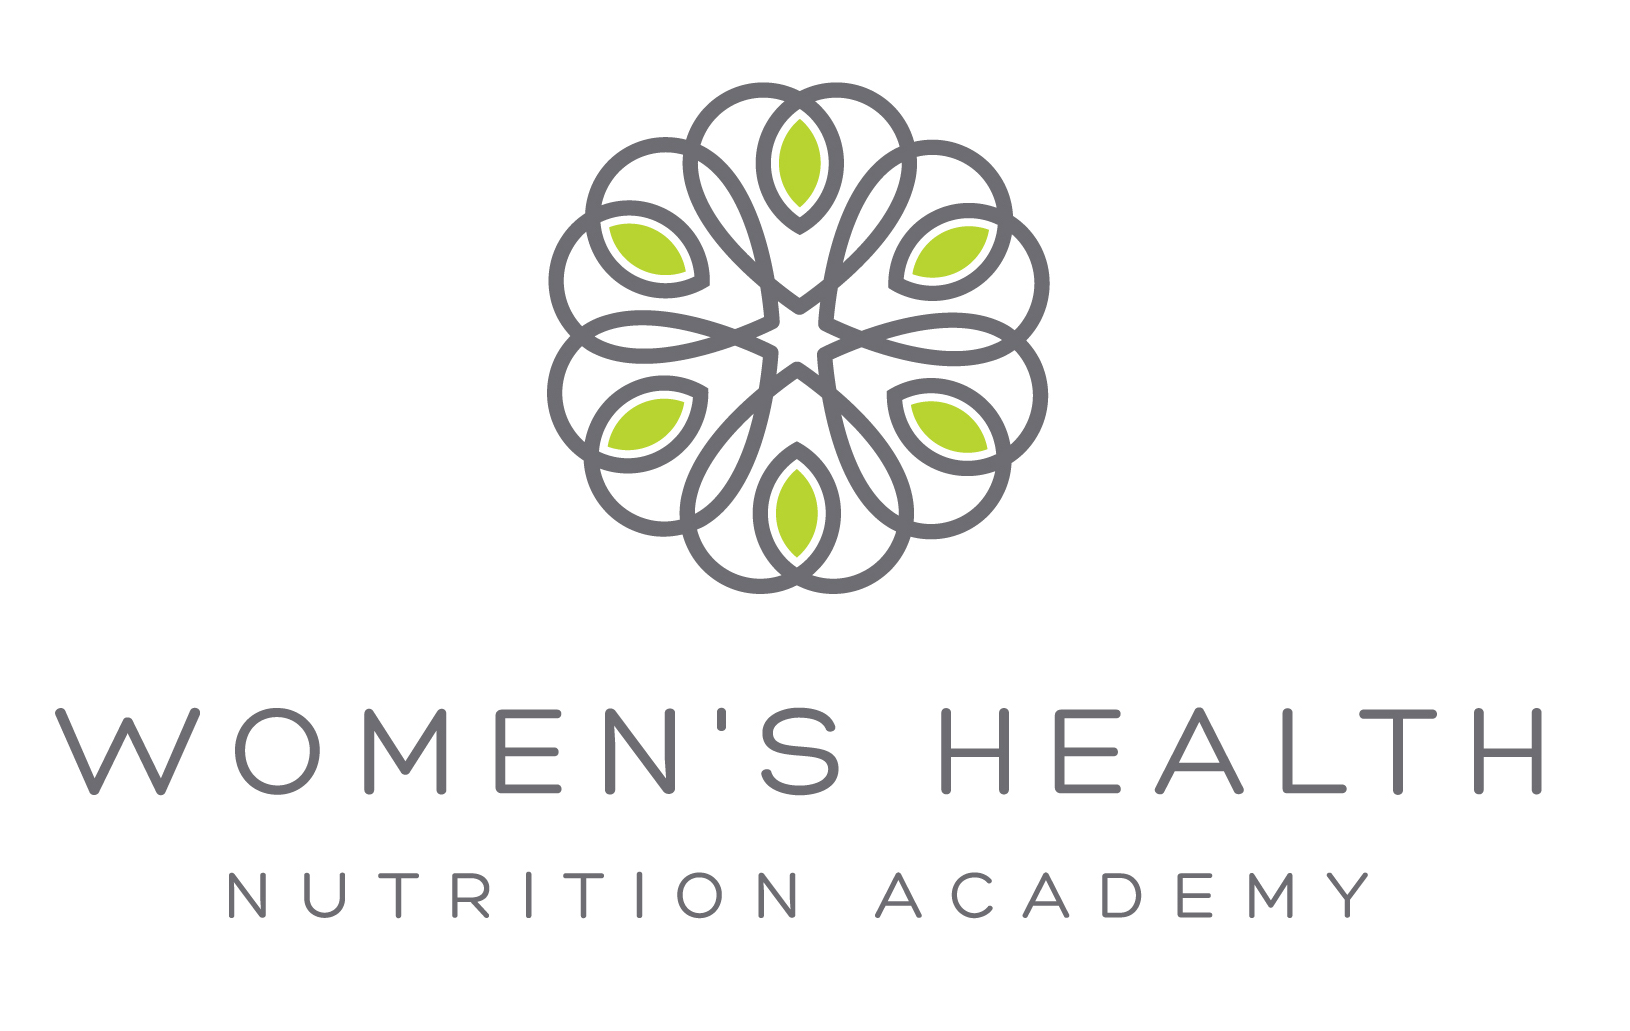 Women's Health Nutrition Academy